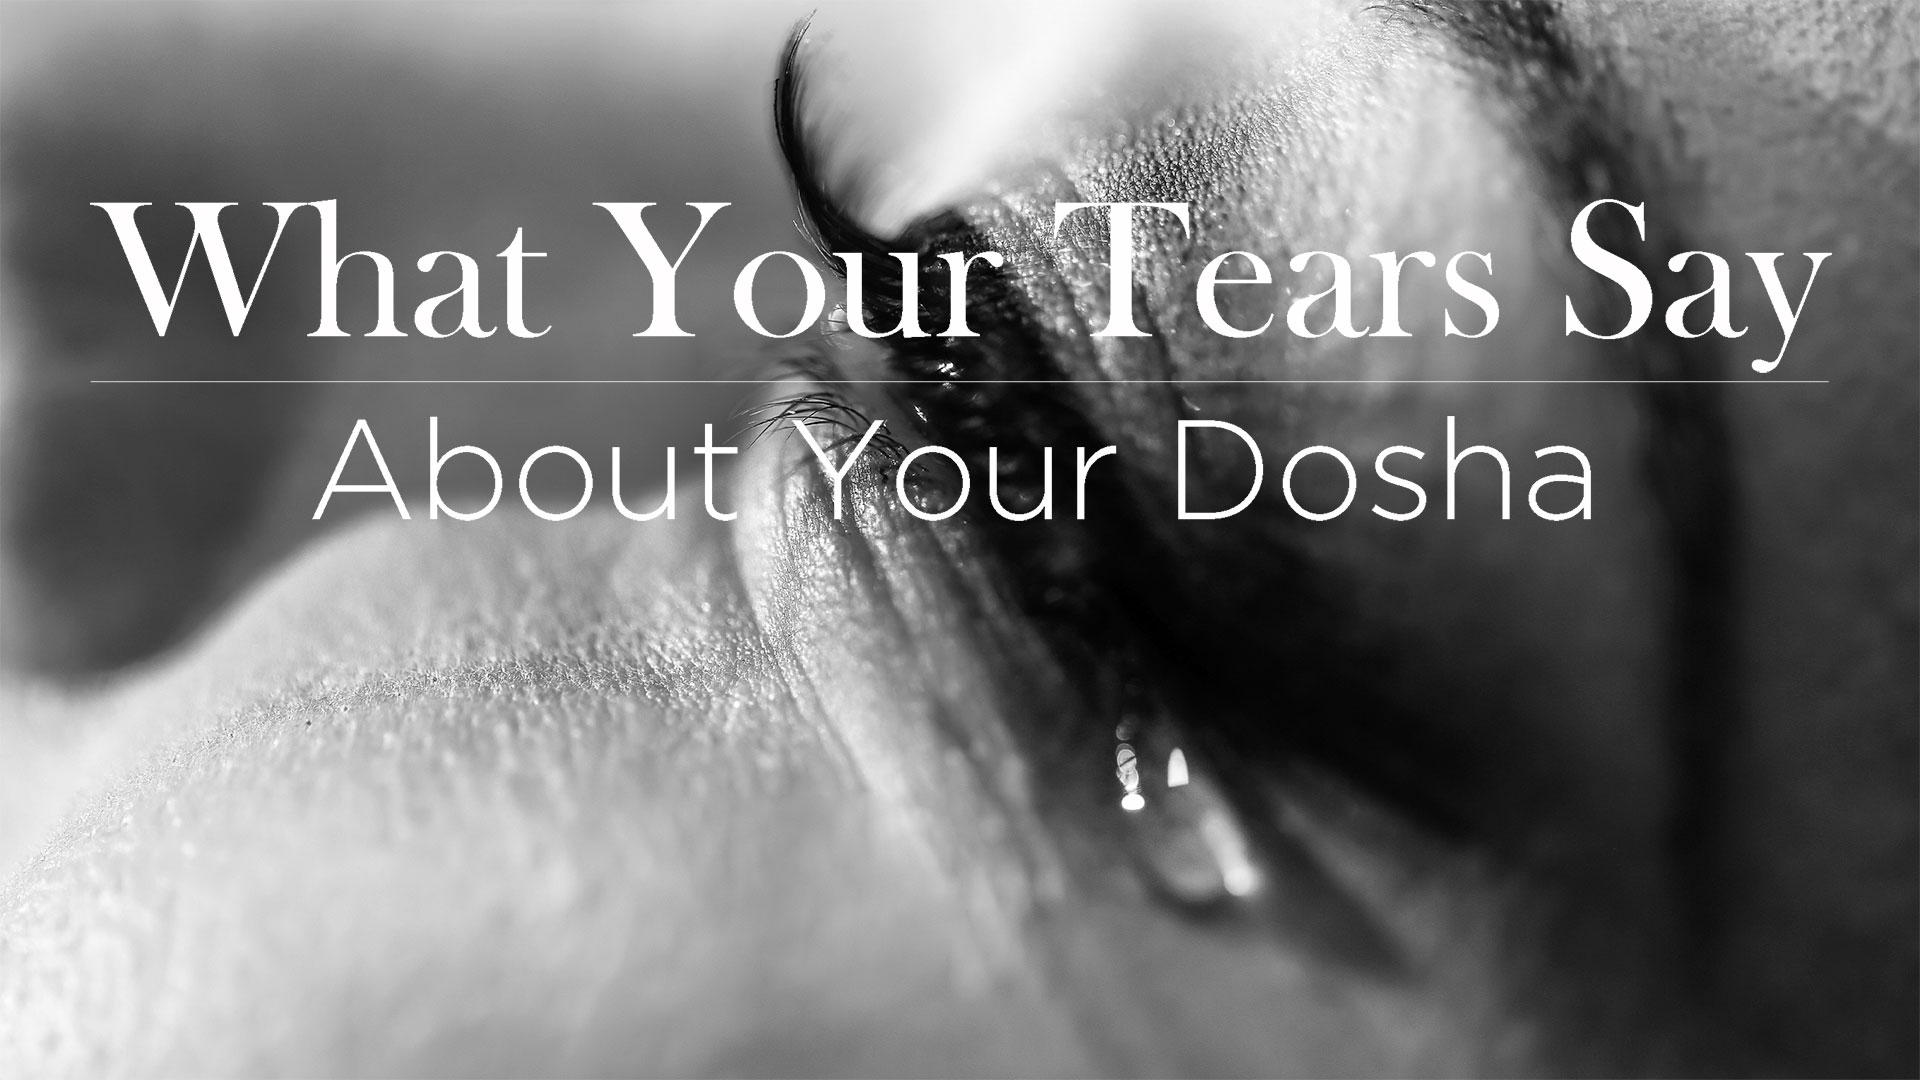 Ayurvedic Abbie: What Your Tears Say About Your Dosha